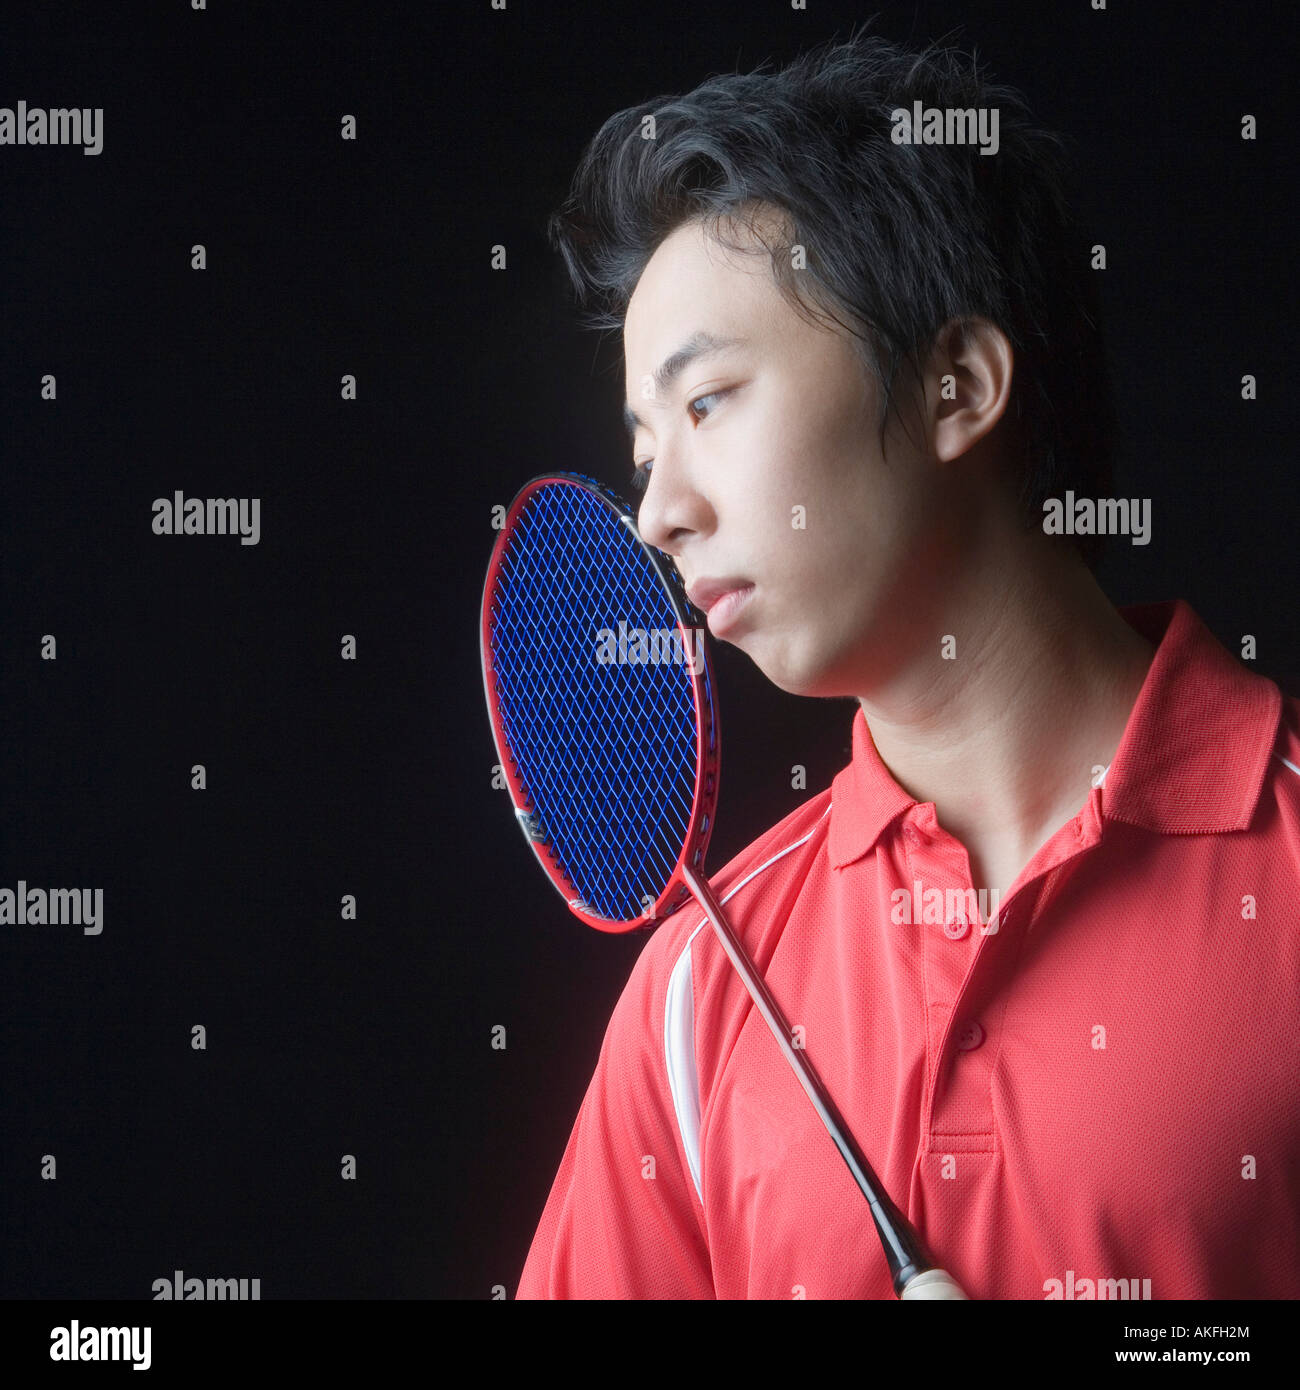 Close-up of a young man with a badminton racket - Stock Image